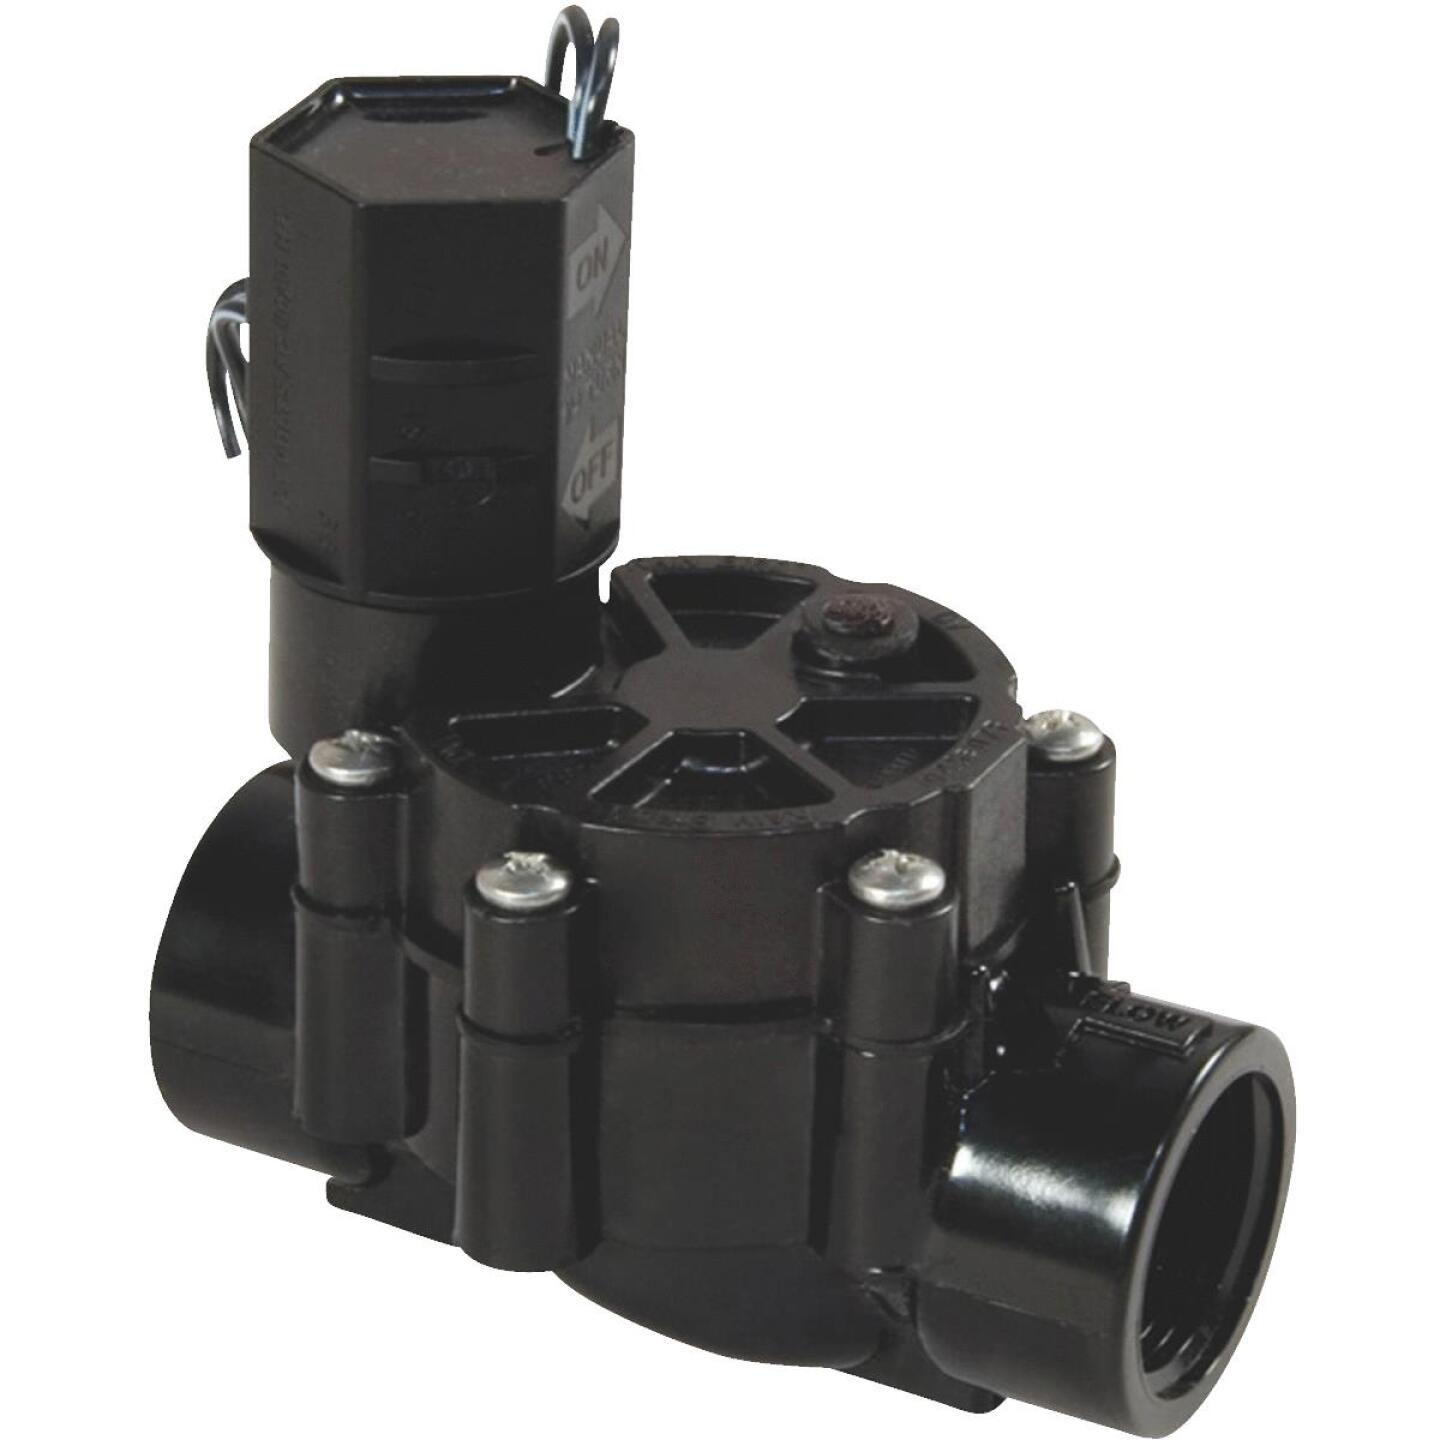 Rain Bird 1 In. 150 psi Electric In-Line Sprinkler Valve Image 1